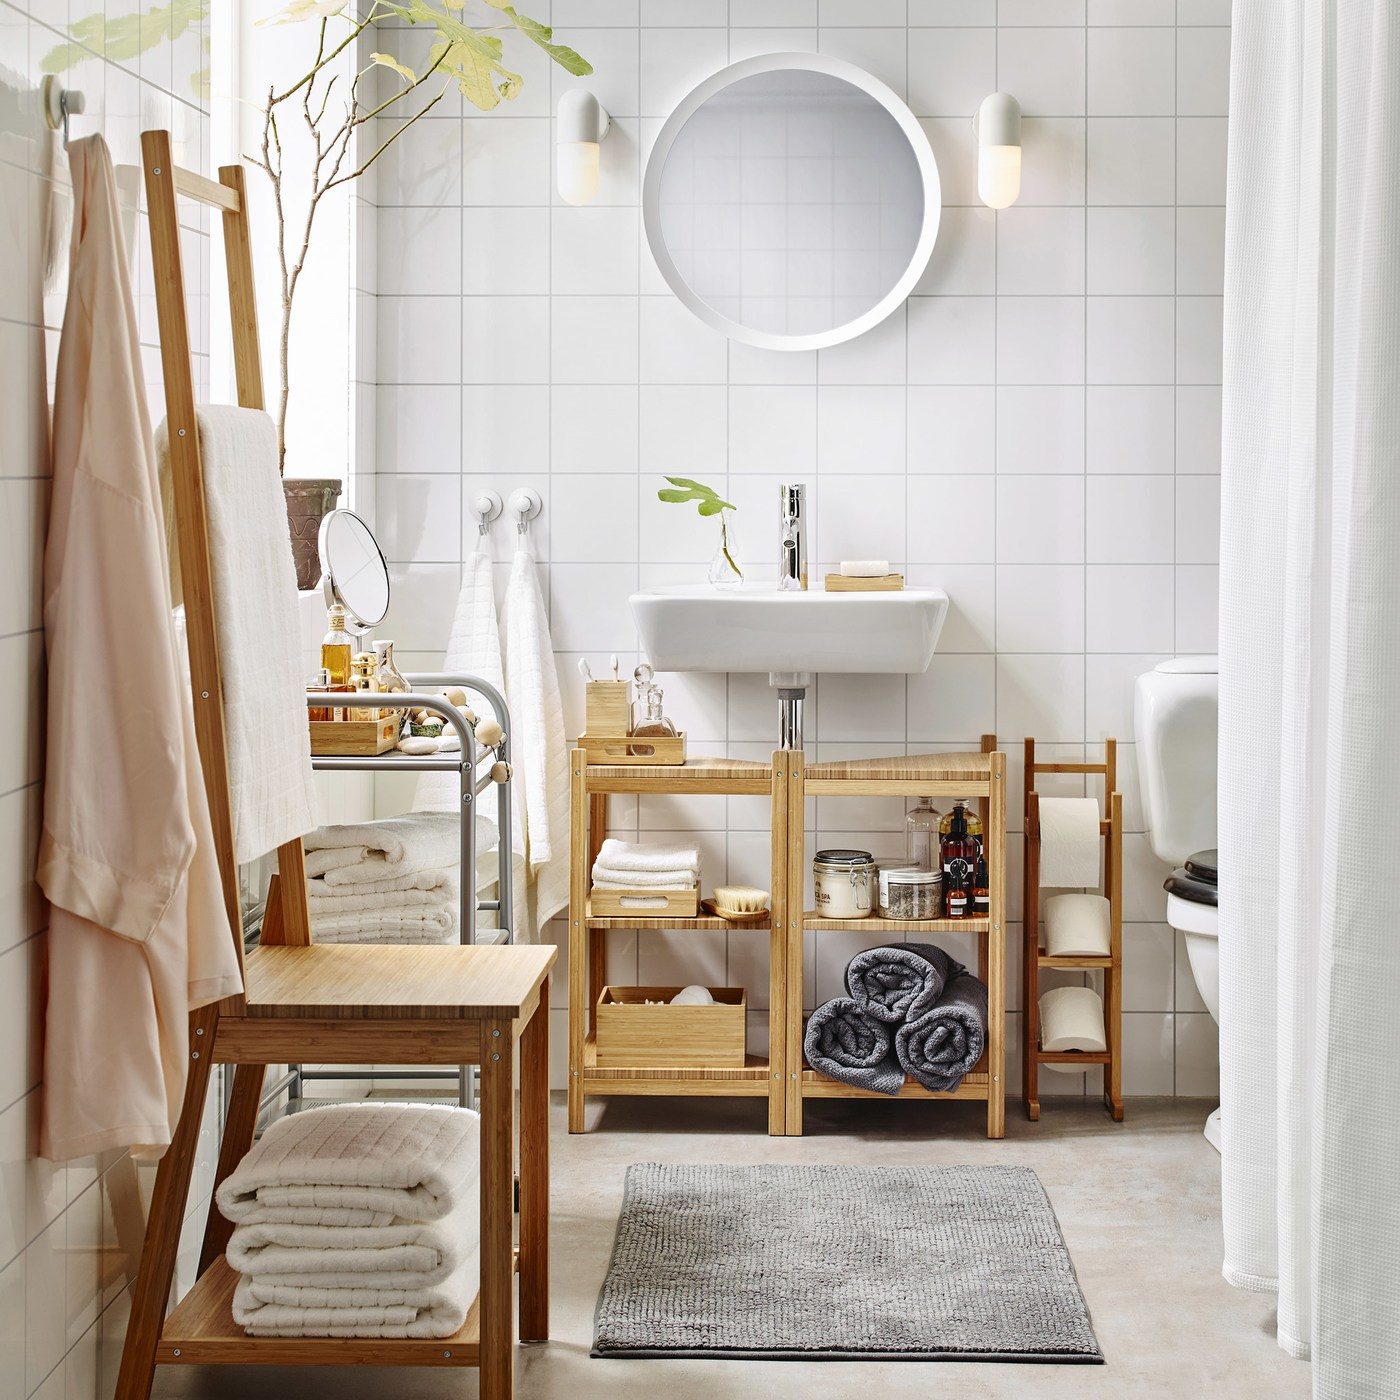 A medium size white bathroom with IKEA RÅGRUND bamboo crafted toilet roll stand, low bathroom shelves and towel rack chair.